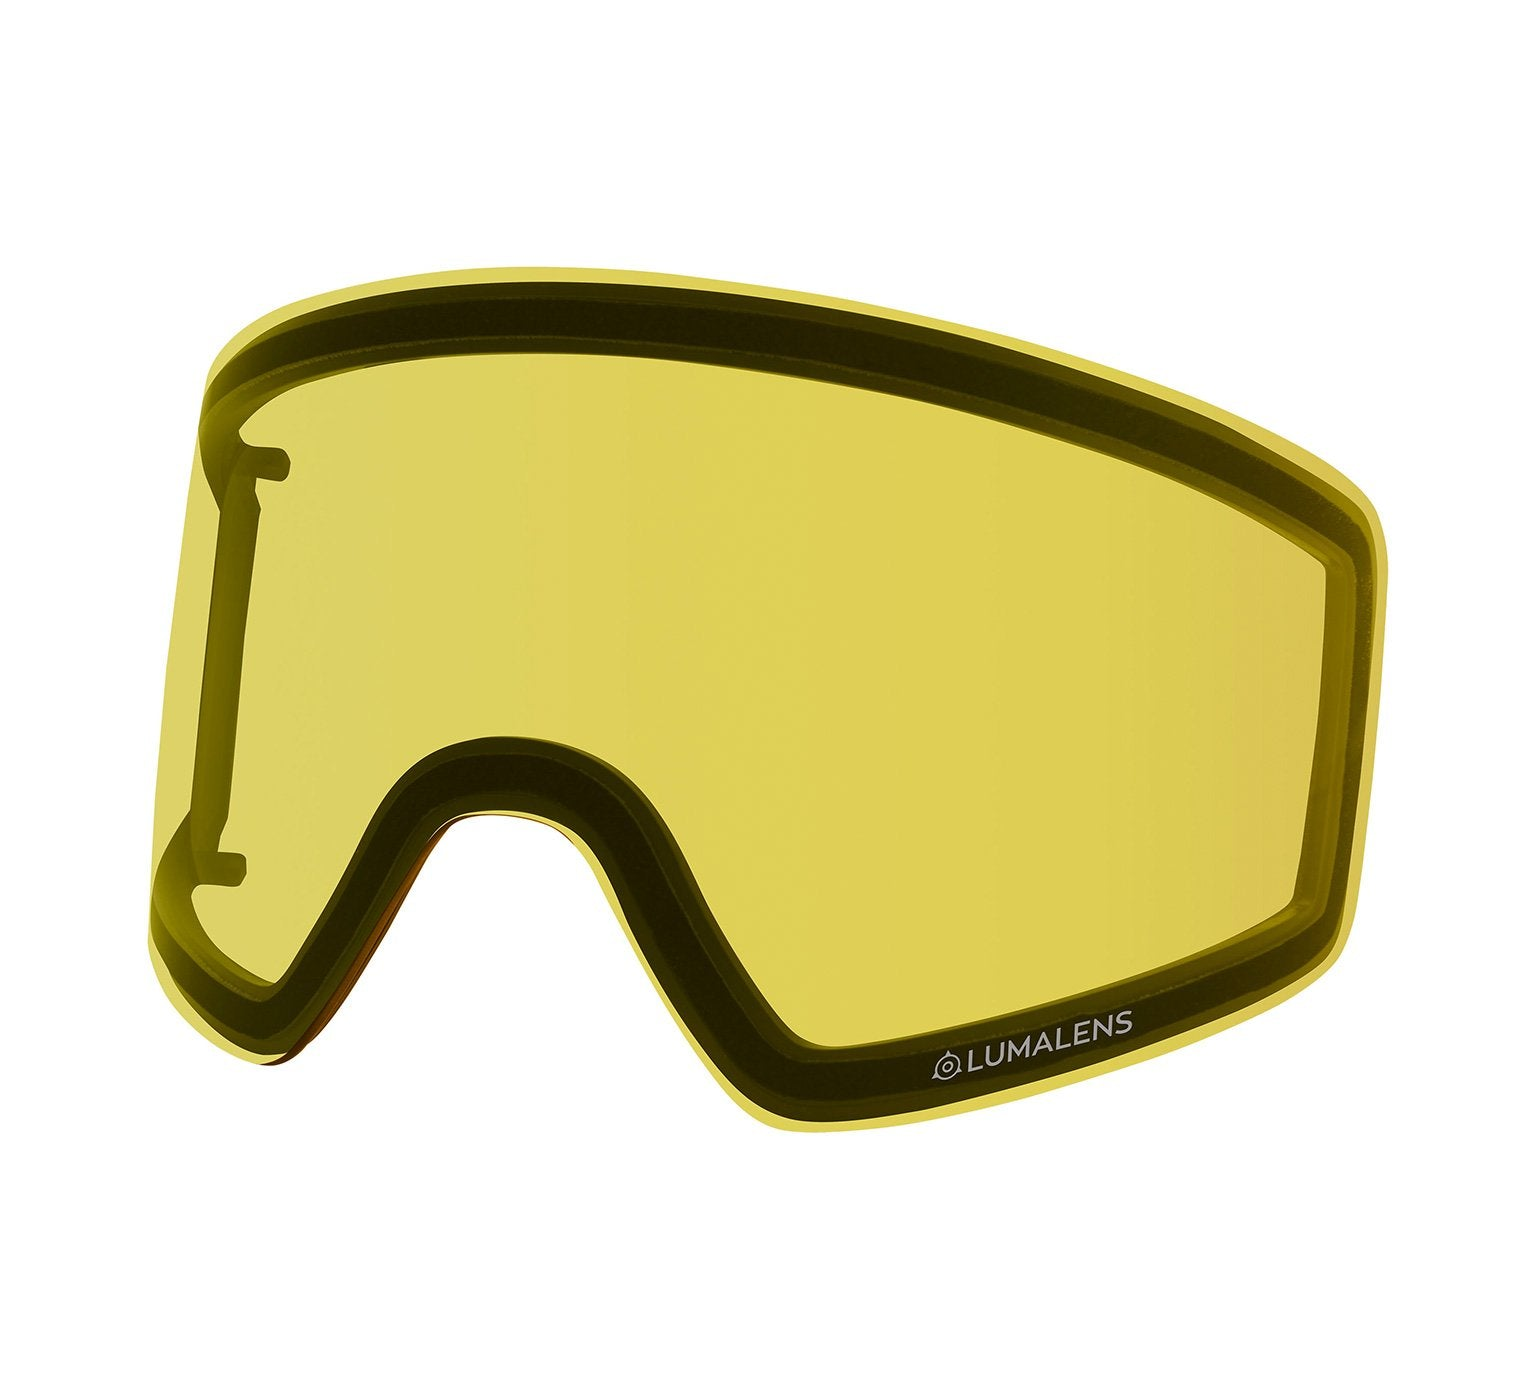 PXV Replacement Lens ; Lumalens Photochromic Yellow